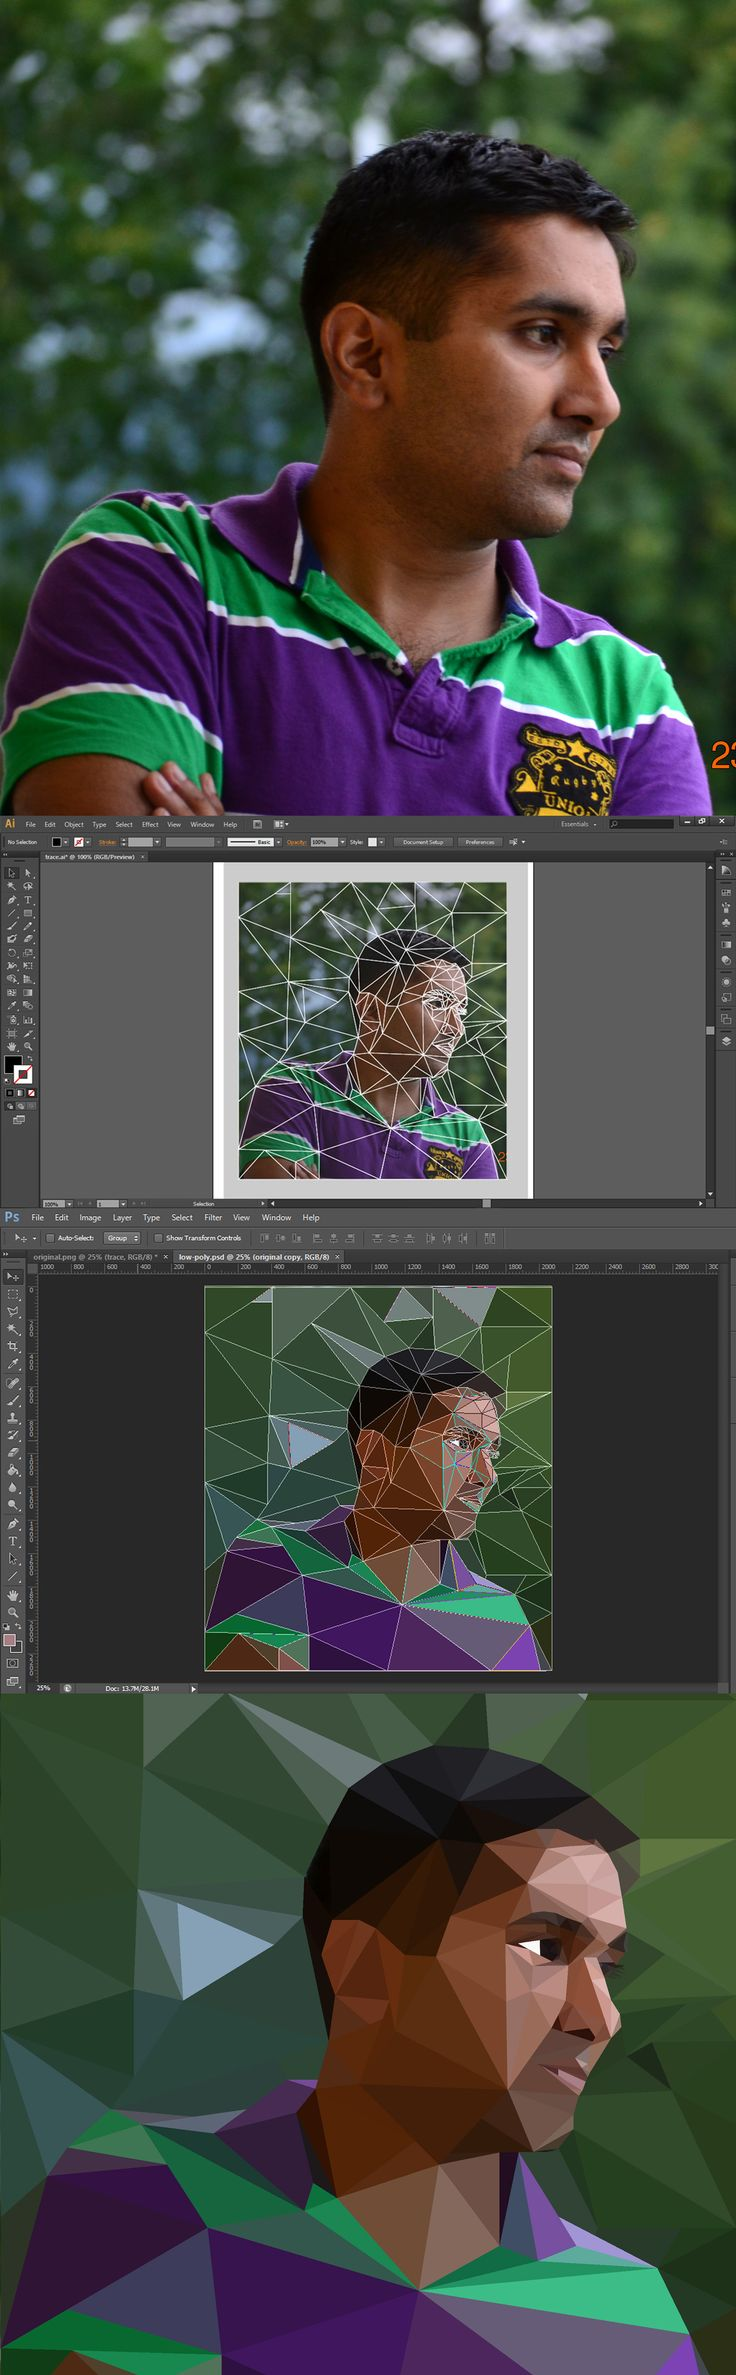 How to convert any image into lowpoly graphic using Illustrator and Photoshop.